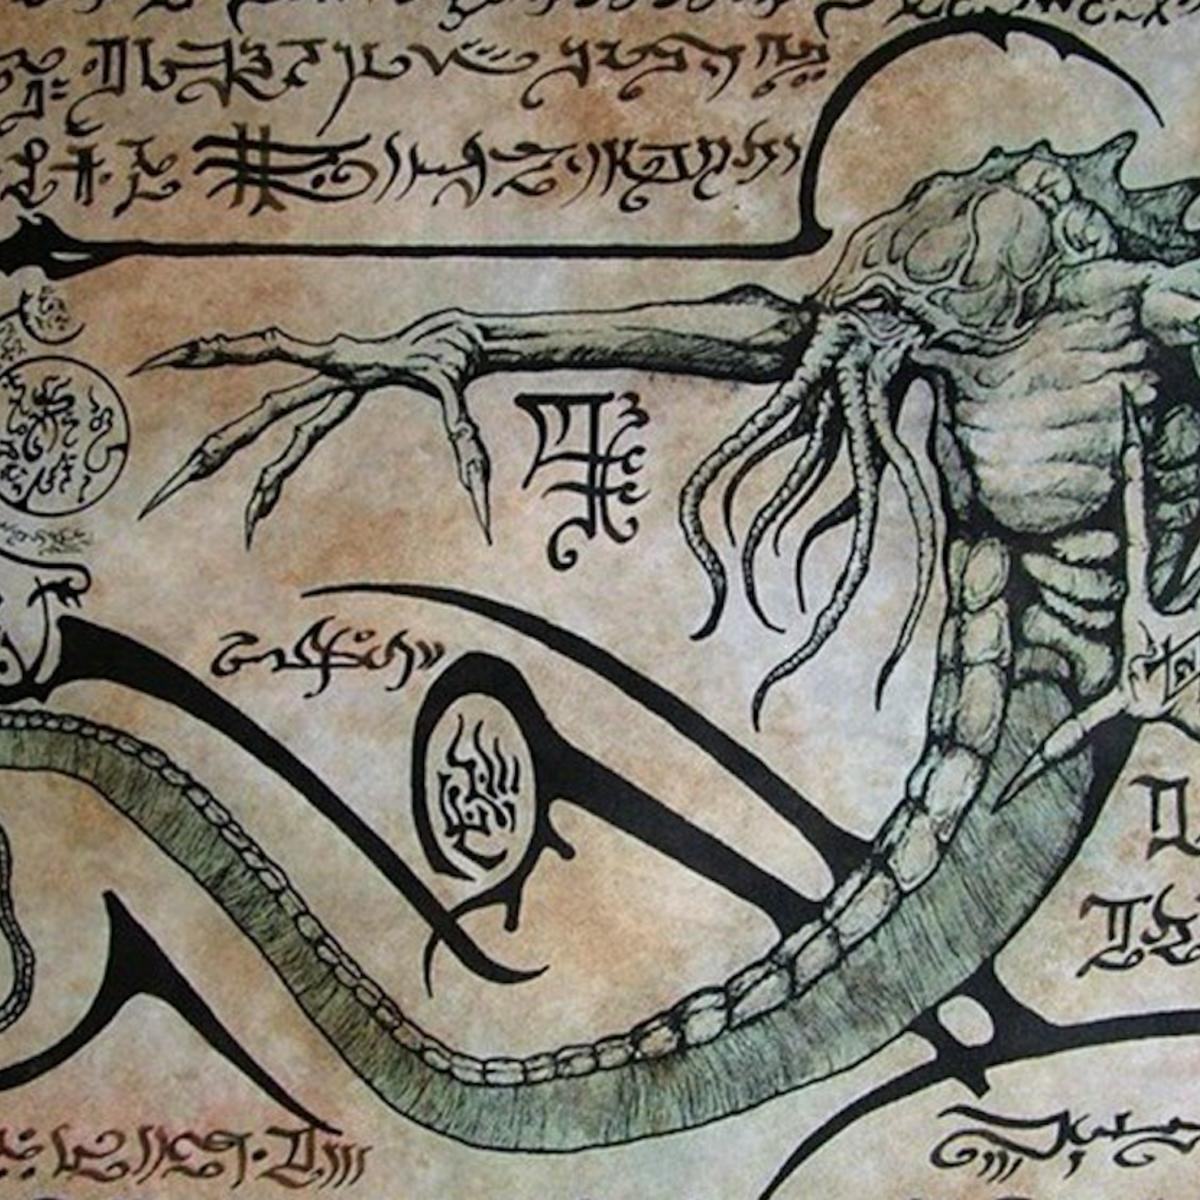 The Rituals Of Cthulhu, Lovecraft